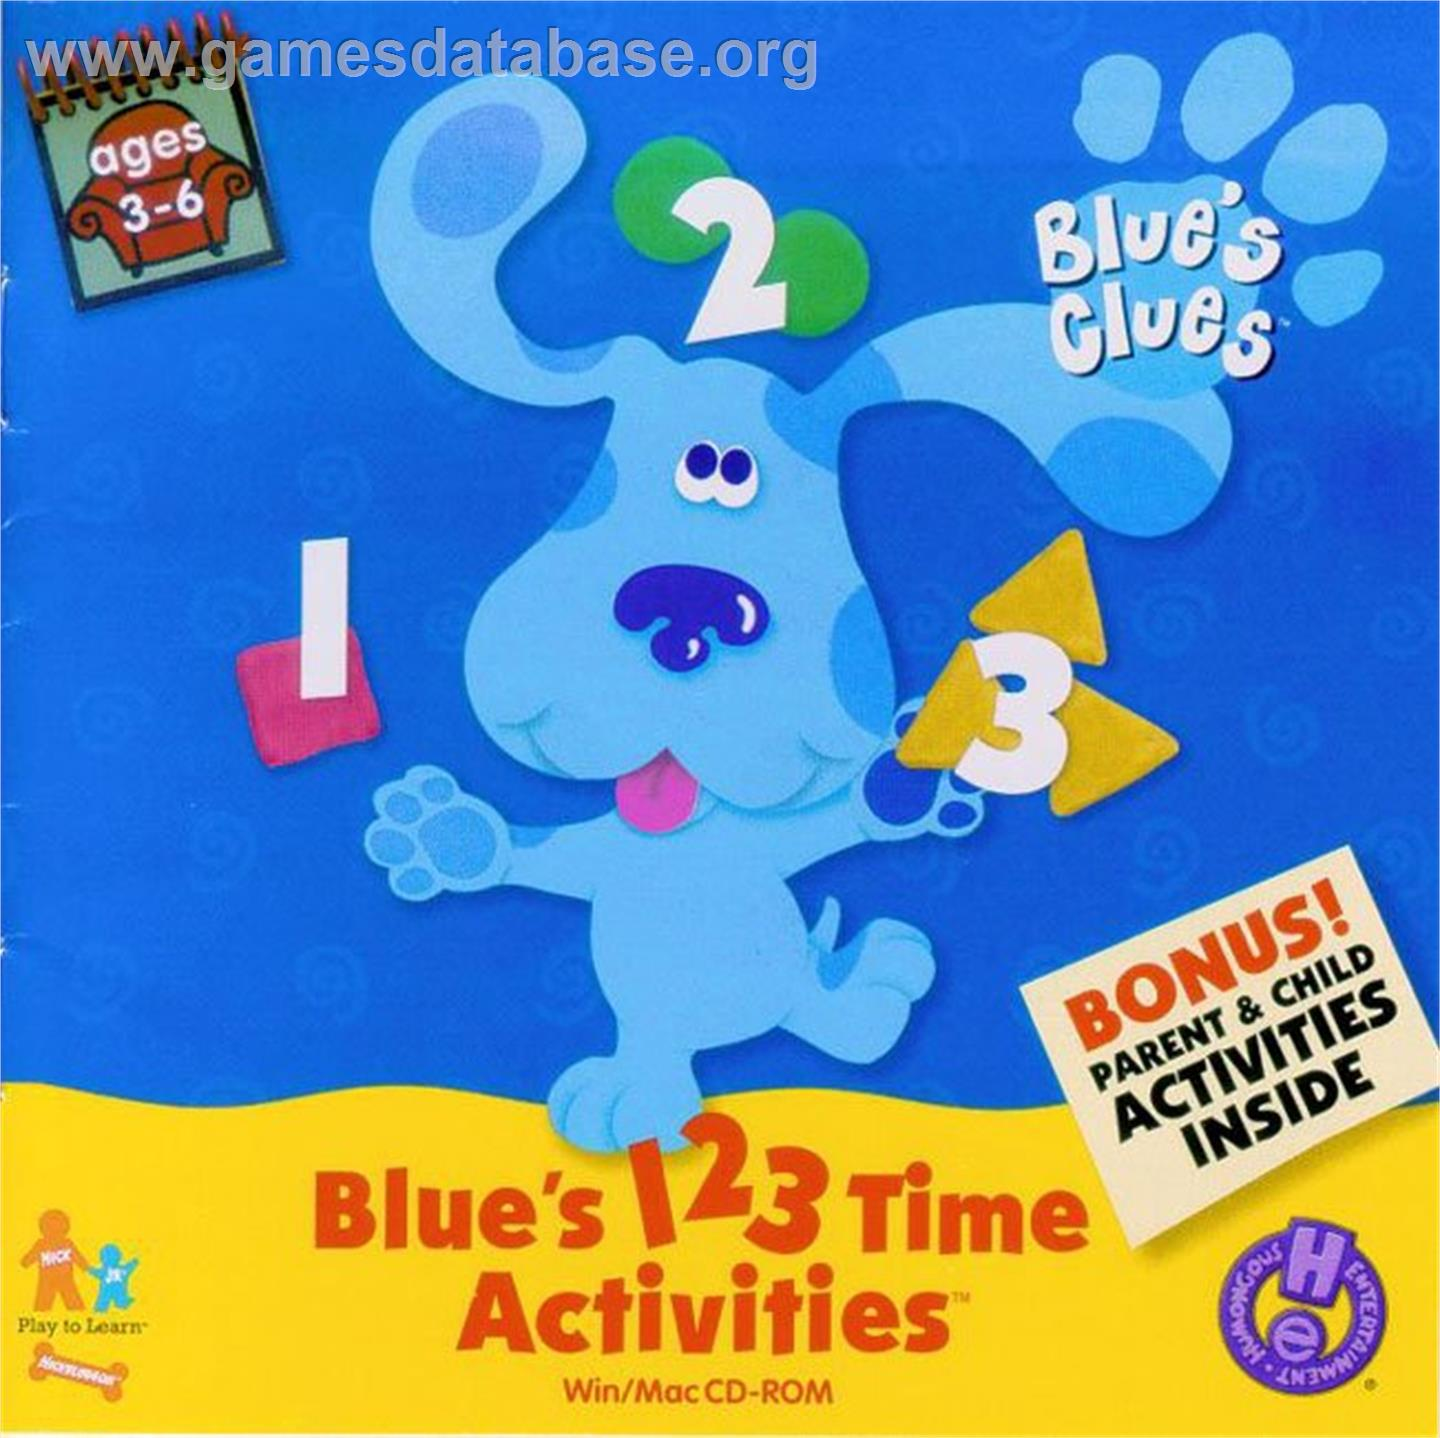 blues clues games images reverse search